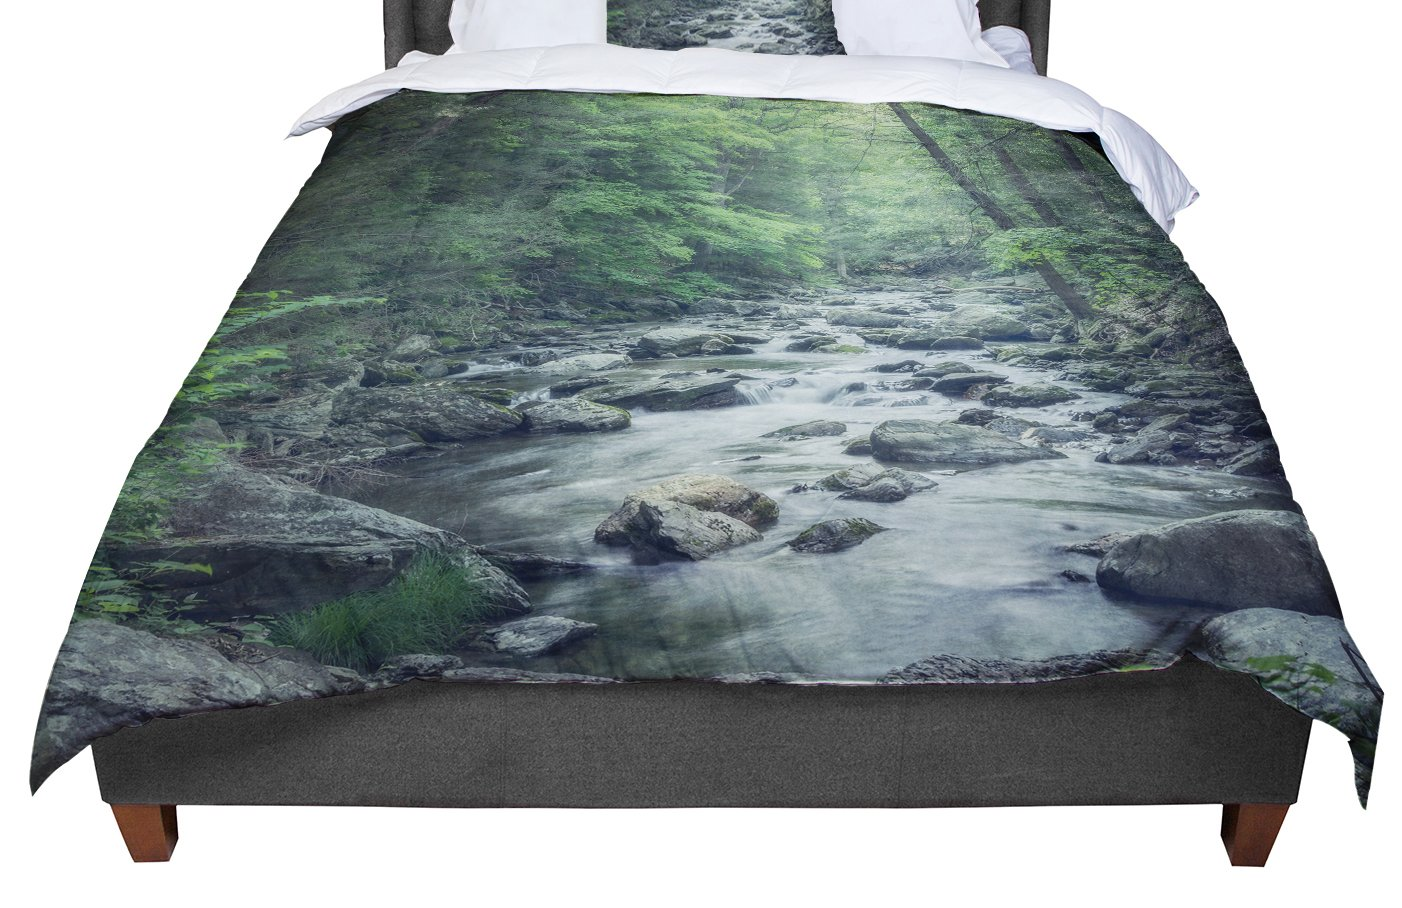 KESS InHouse Suzanne Harford 'Misty Forest Stream' Nature Photography King / Cal King Comforter, 104' X 88'